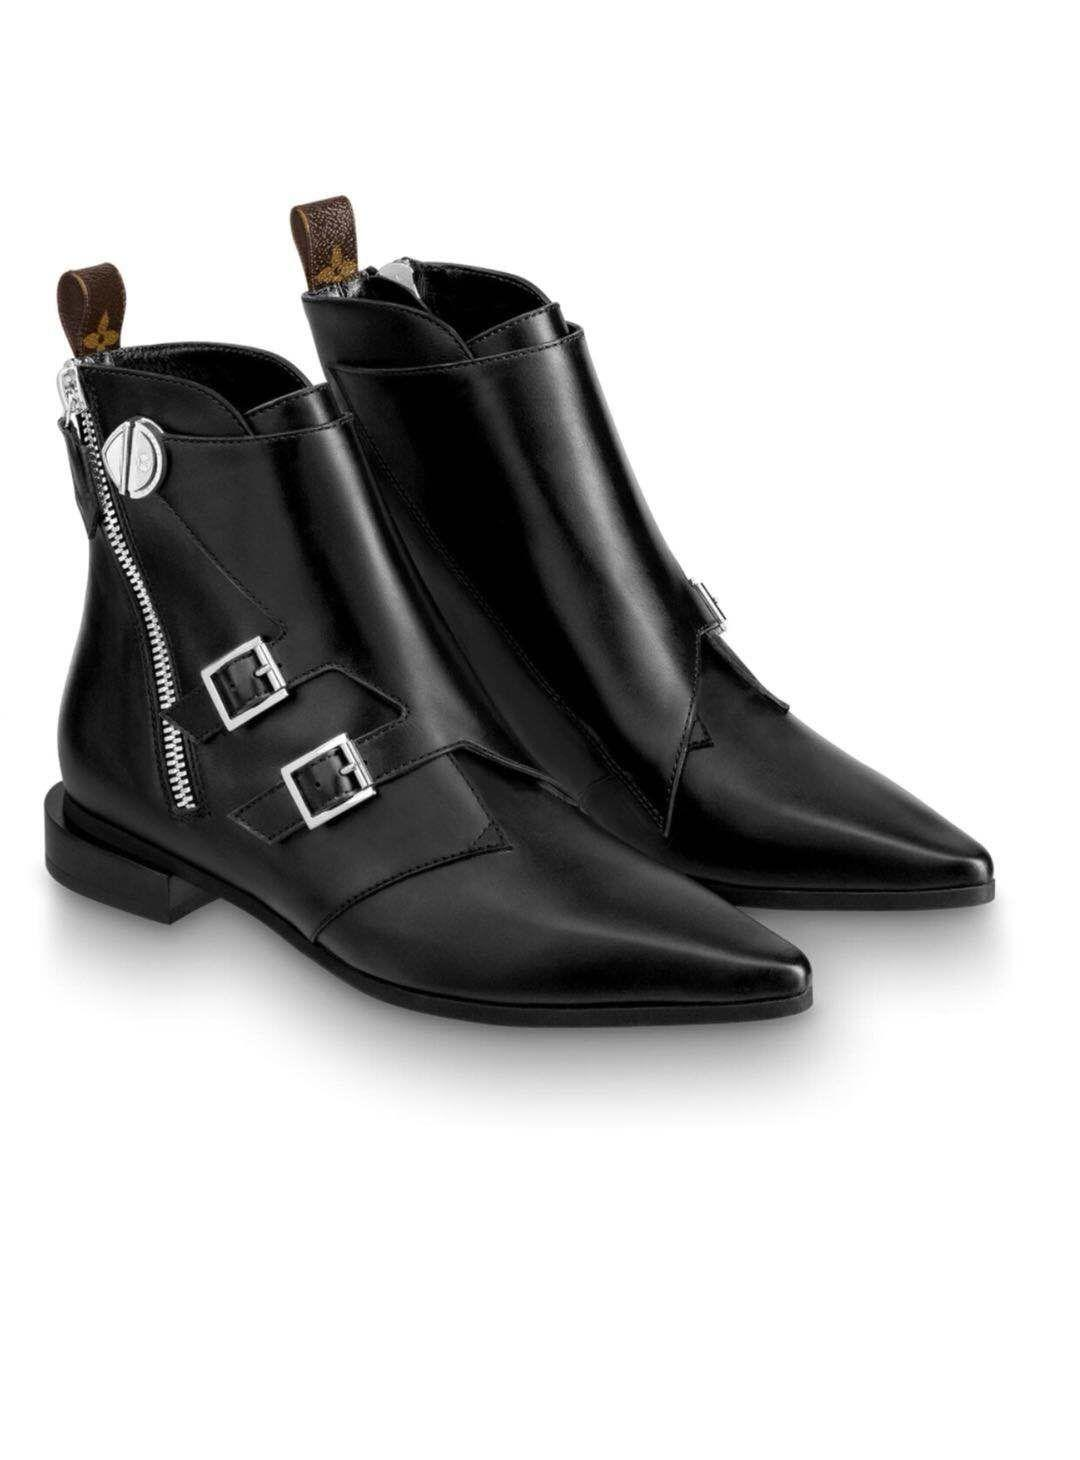 Flower Tip Side Zipper and Ankle Boots lady woman Punk Belt Button Stitching Zipper boots leather Girl